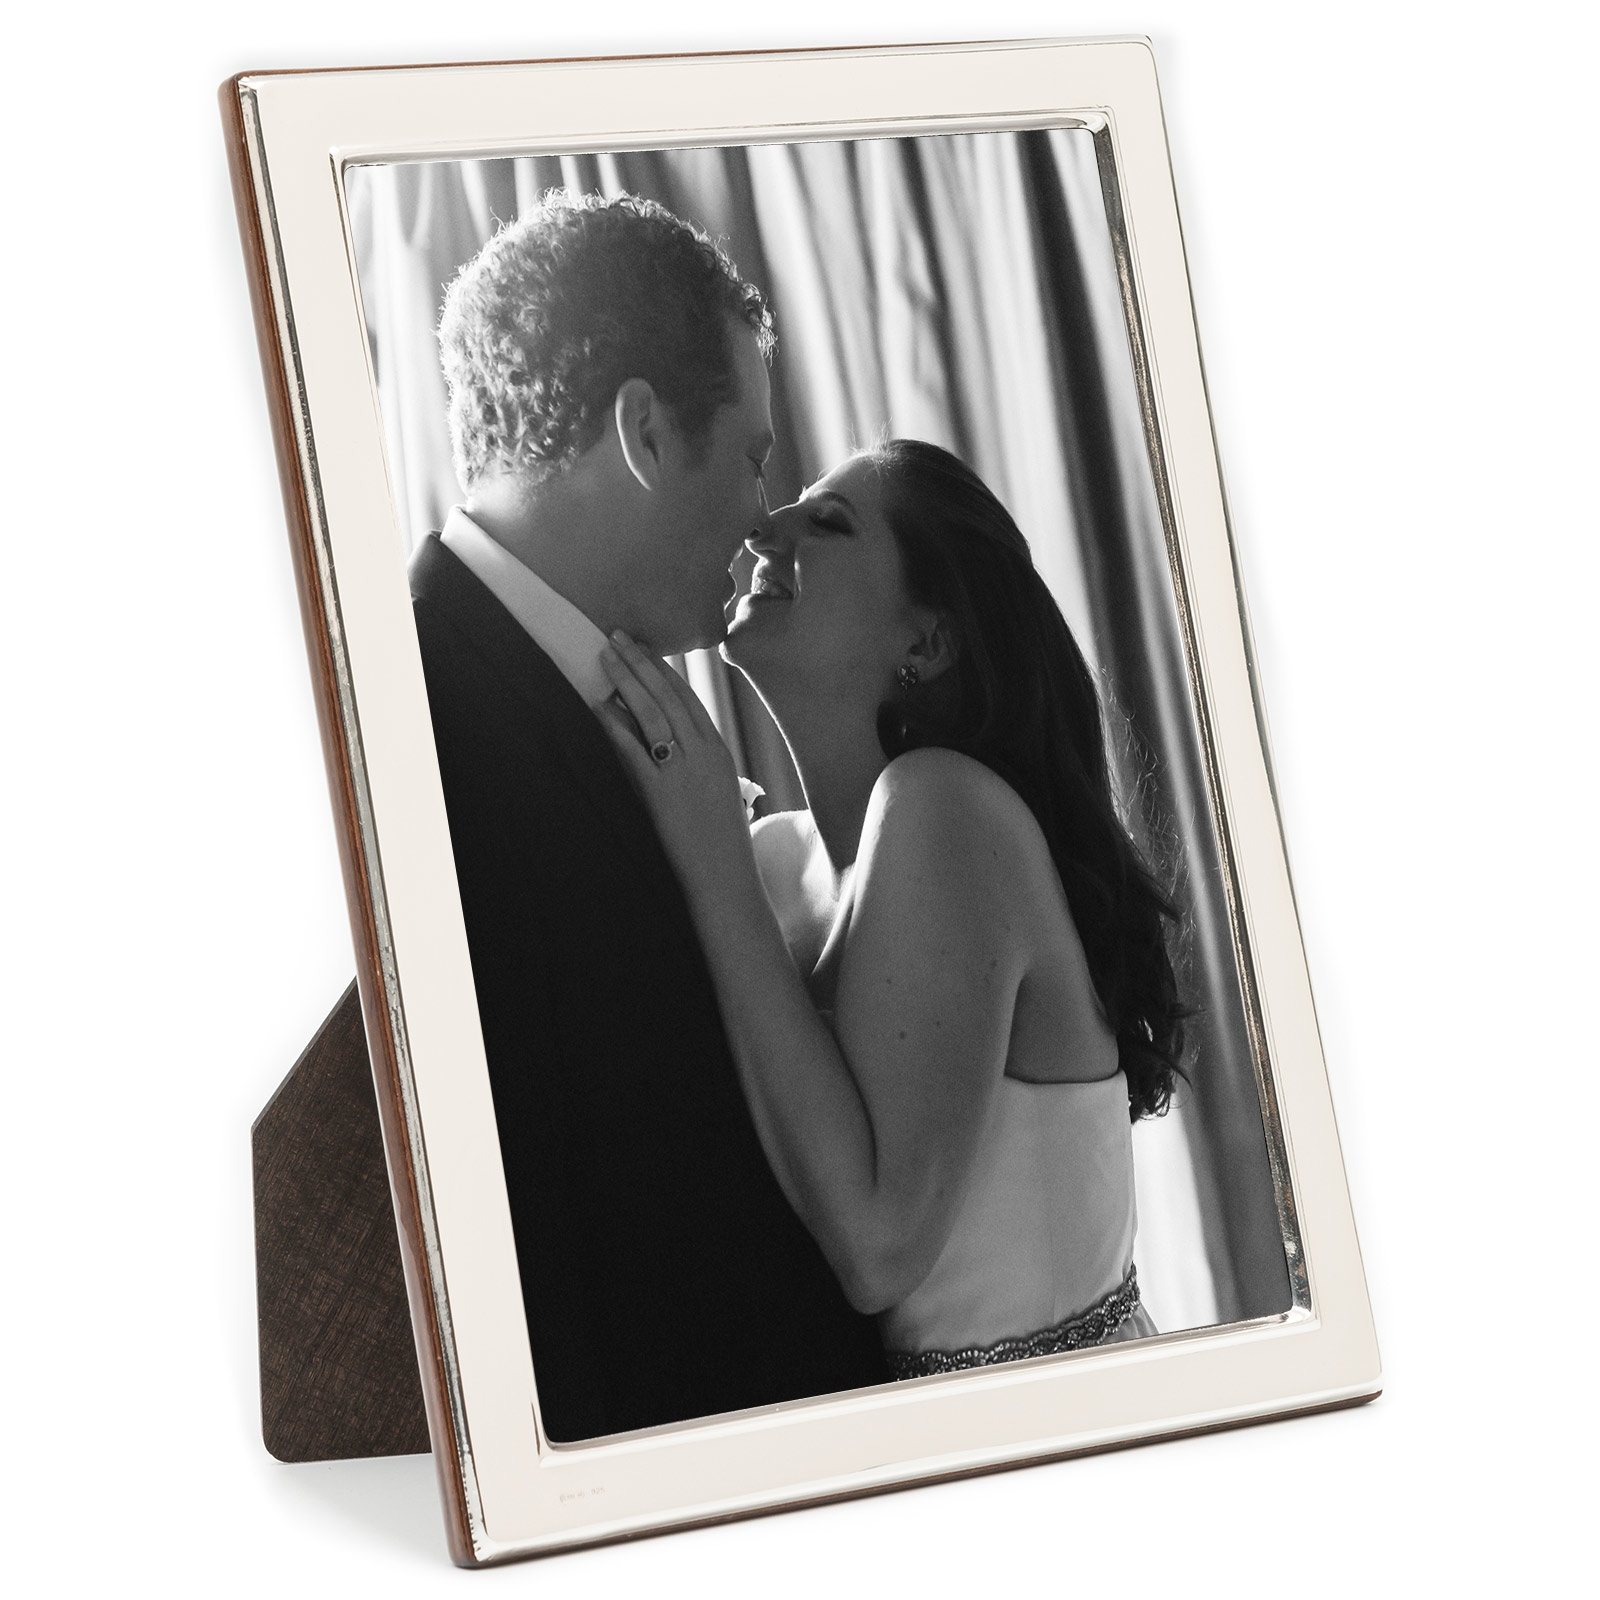 Personal wedding gifts photo frames online frameology jeuxipadfo Image collections